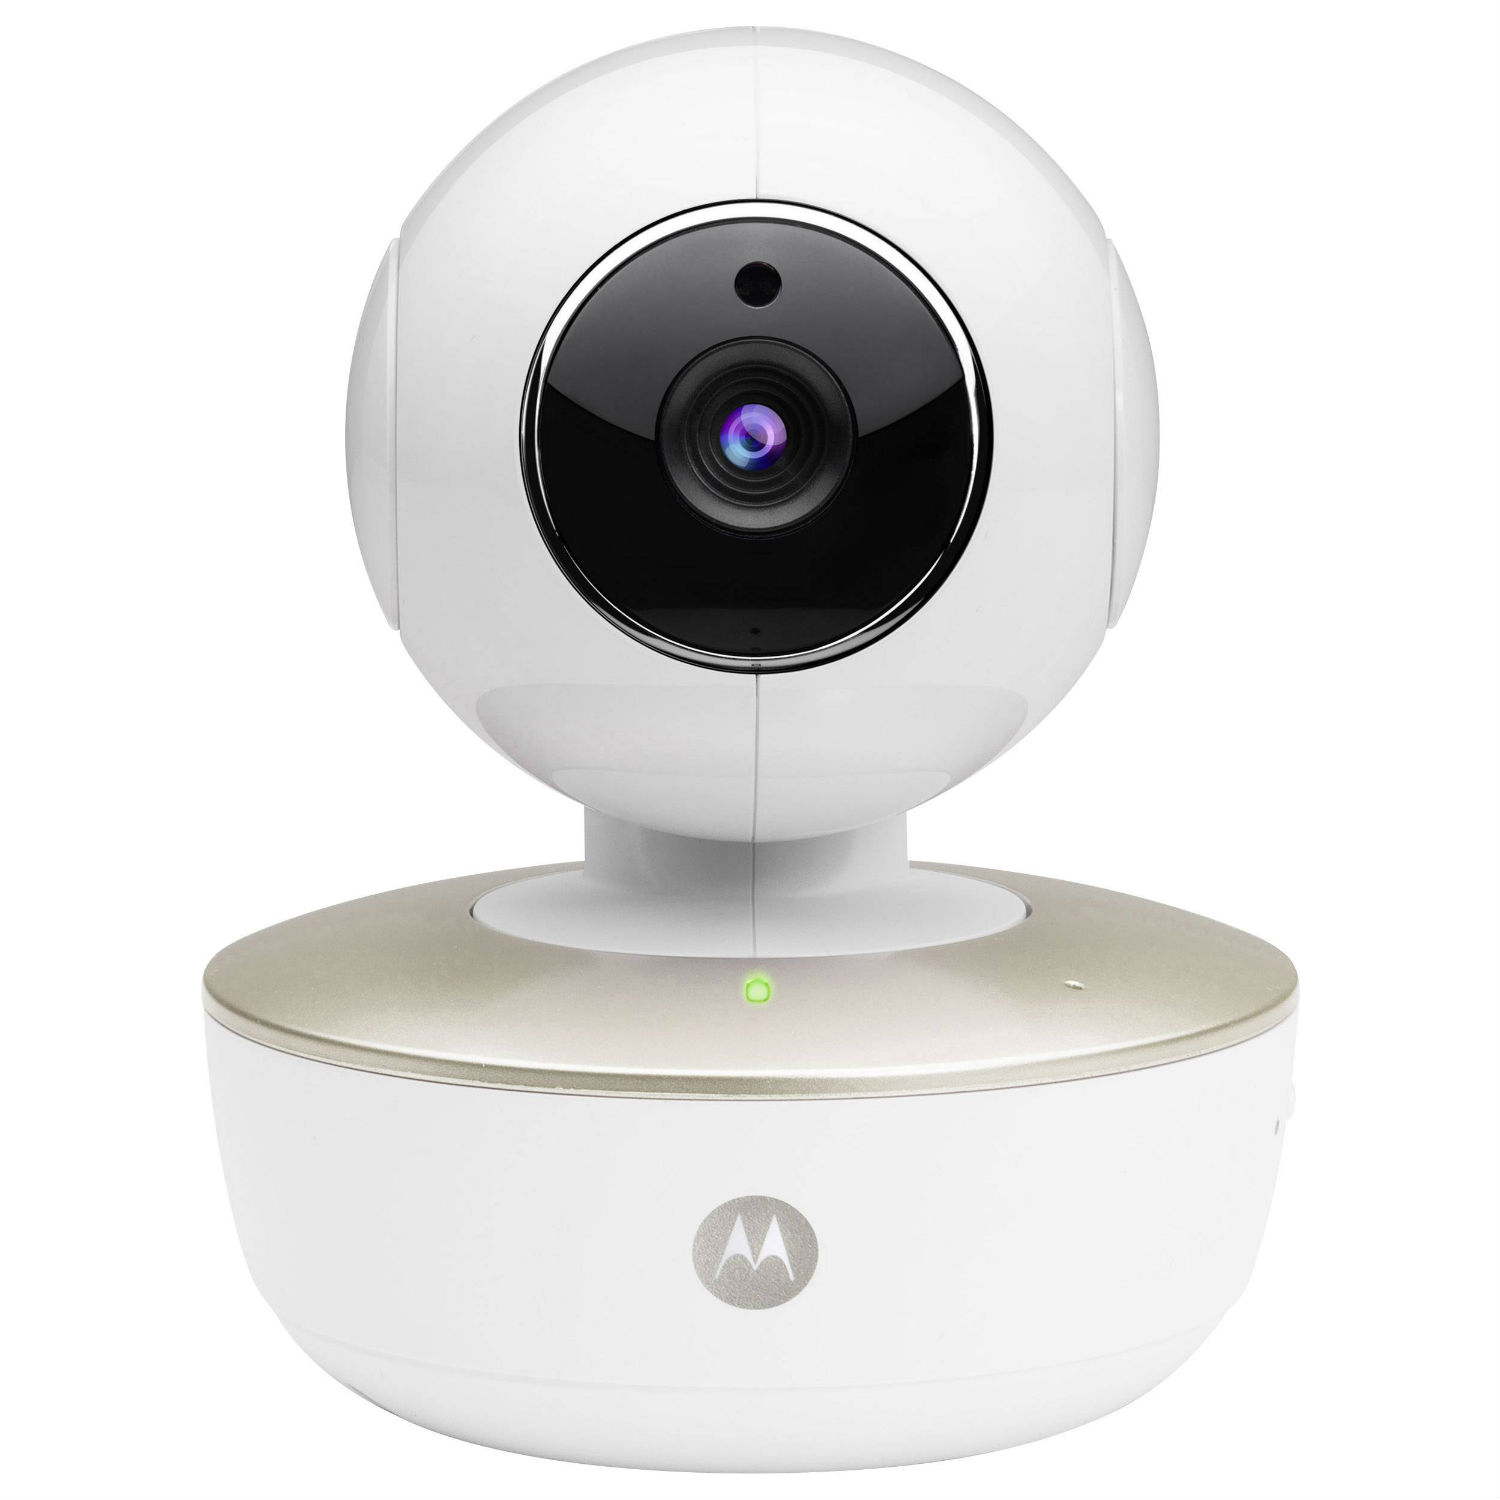 Image of Motorola MBP88CONNECT Portable Wi-Fi Baby Monitor Camera - White